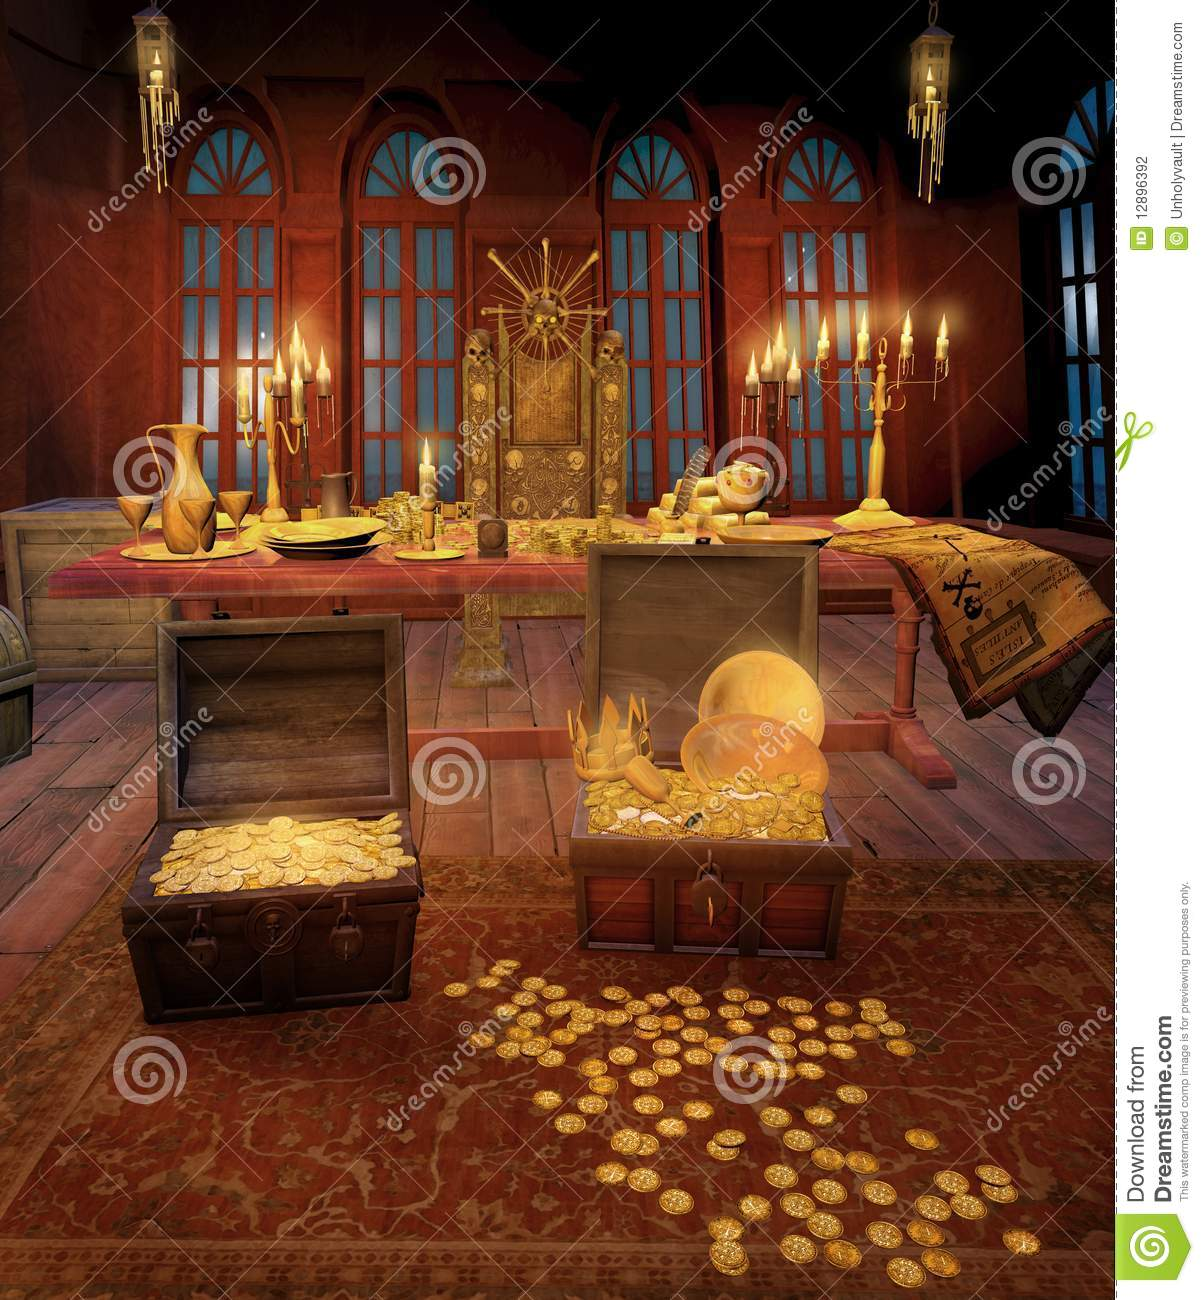 Pirate Cabin With Treasures Stock Illustration